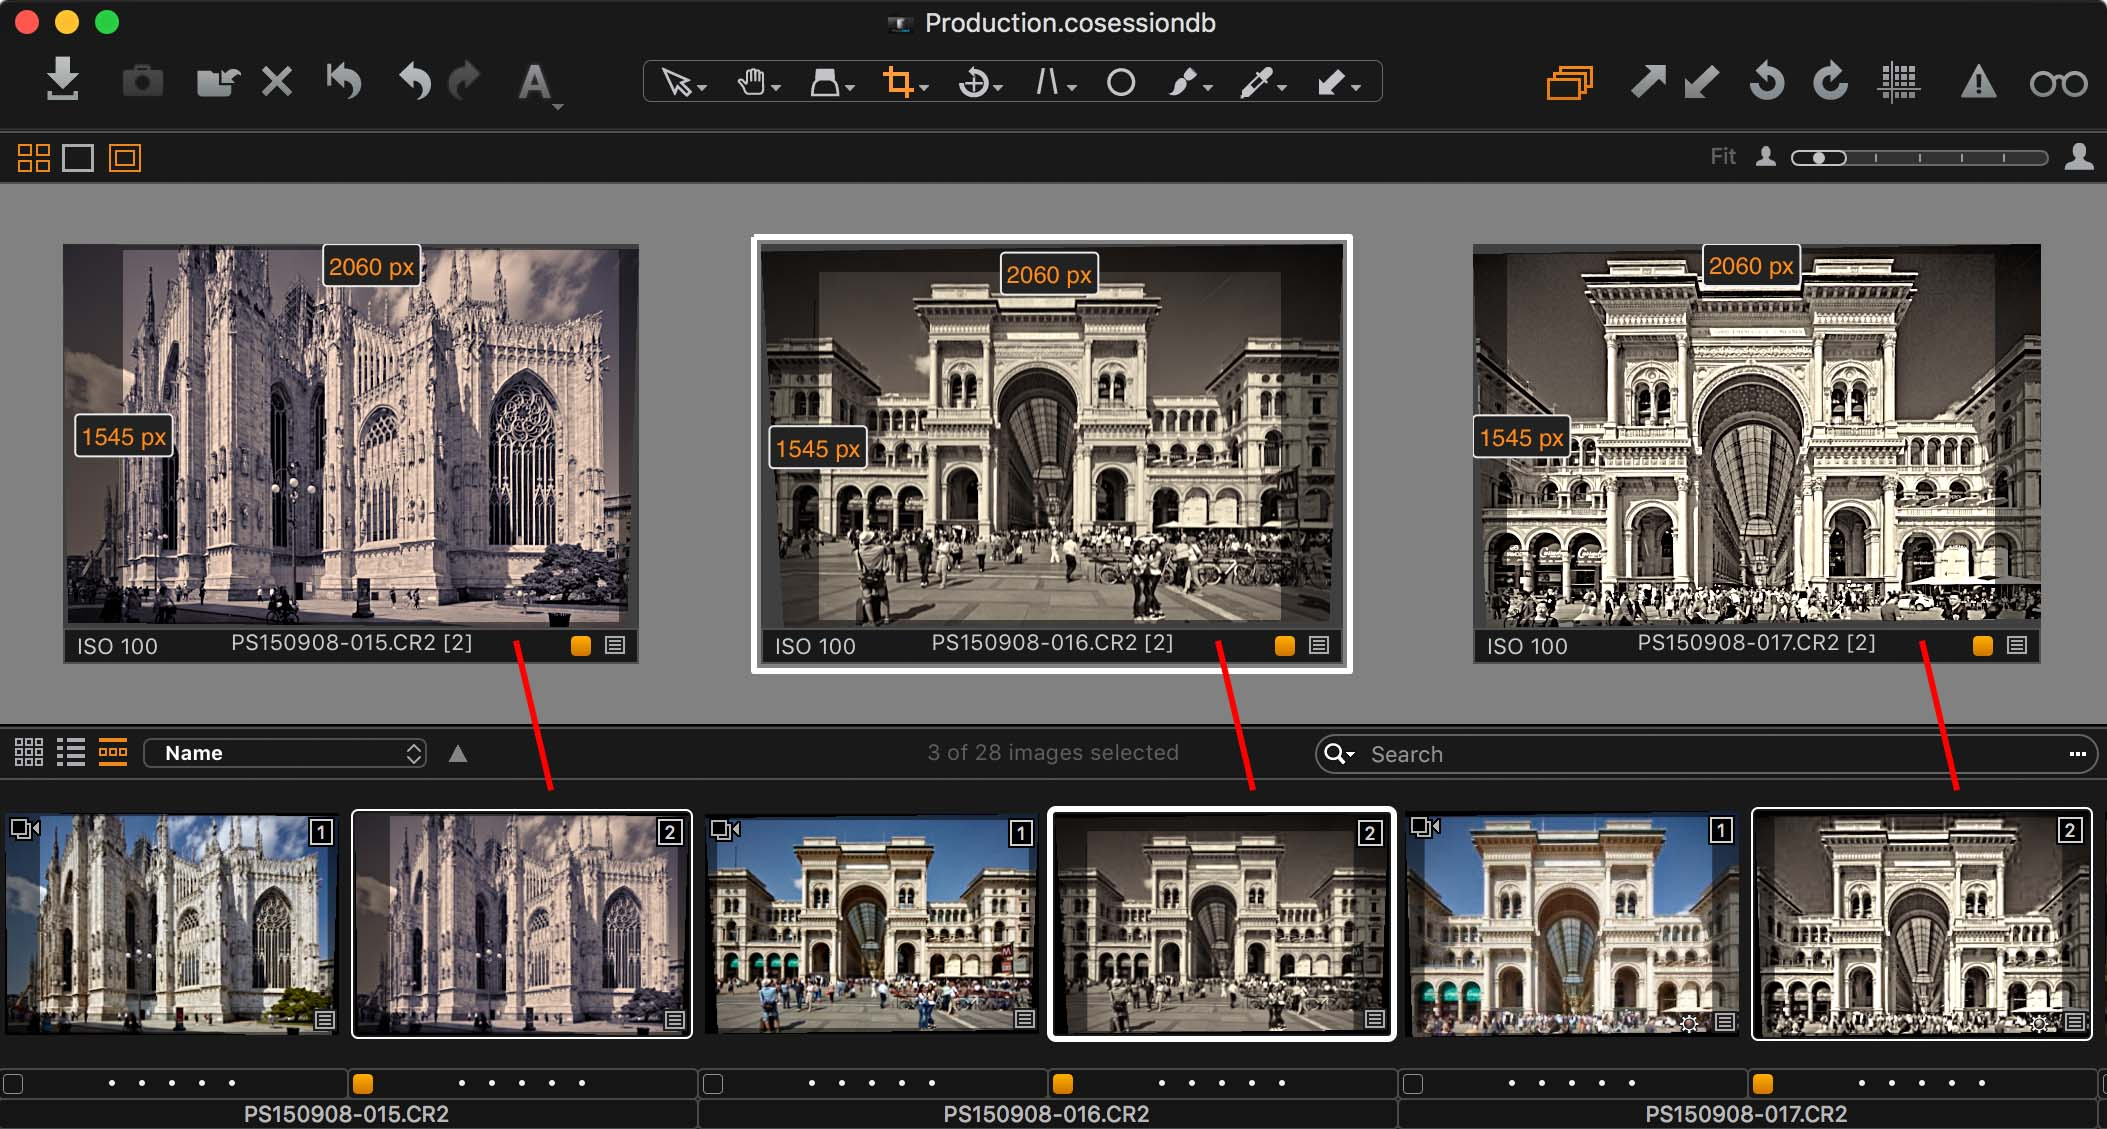 capture one black and white tool, variants